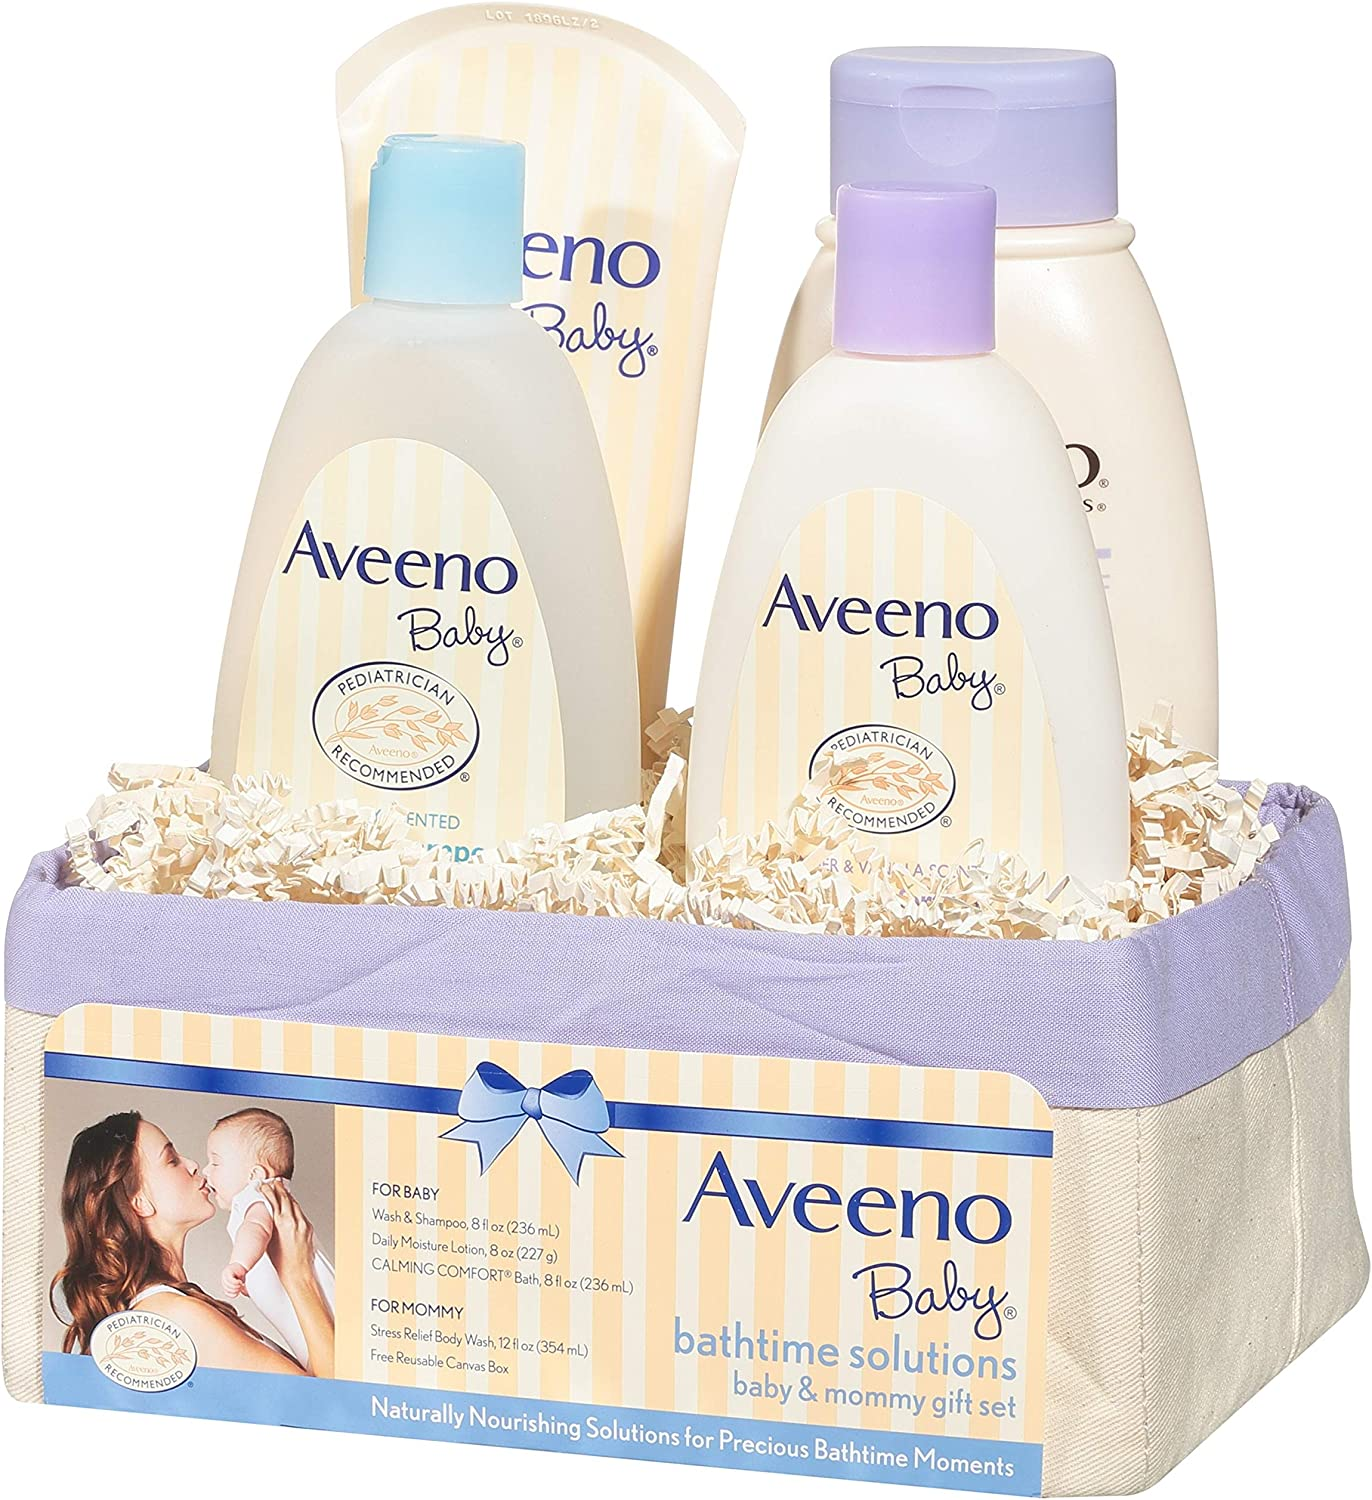 Aveeno Baby Daily Bathtime Solutions Gift Set including Baby Wash & Shampoo, Baby Calming Bath, Baby Moisturizing Lotion and Stress Relief Body Wash for Mom, 4 items